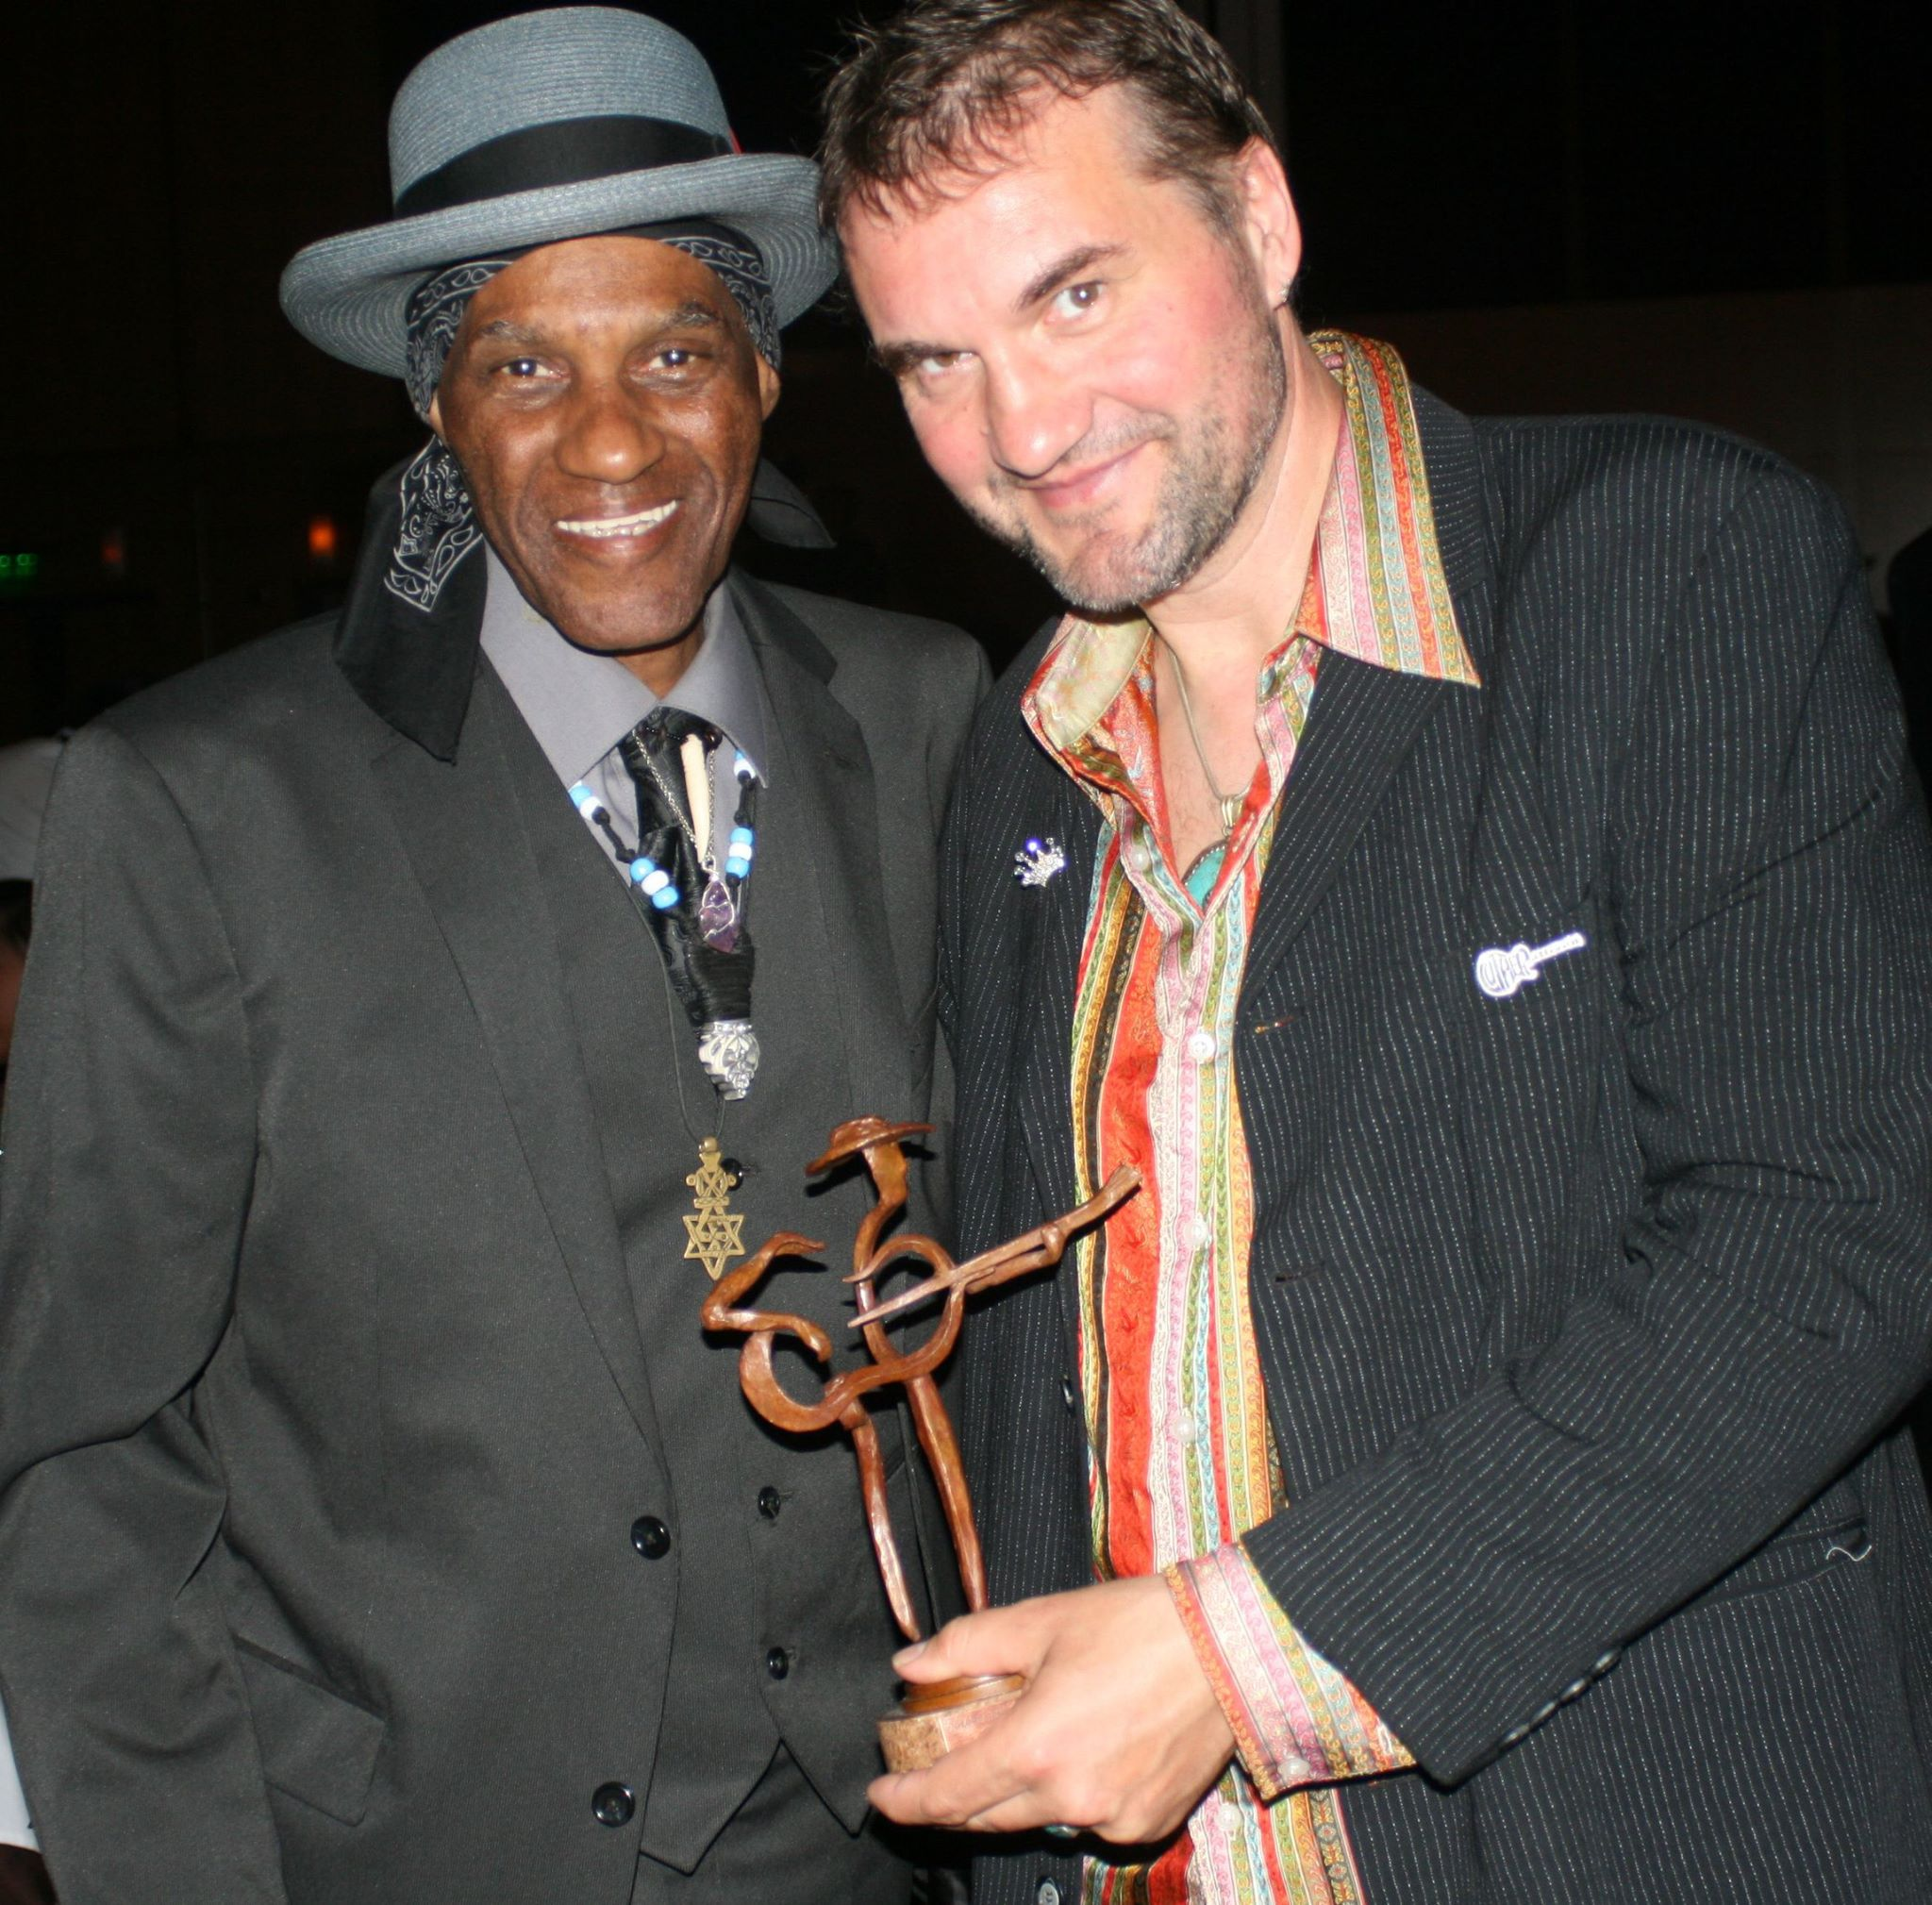 CYRIL NEVILLE AND THOMAS RUF - 2014 BLUES MUSIC AWARDS, MEMPHIS